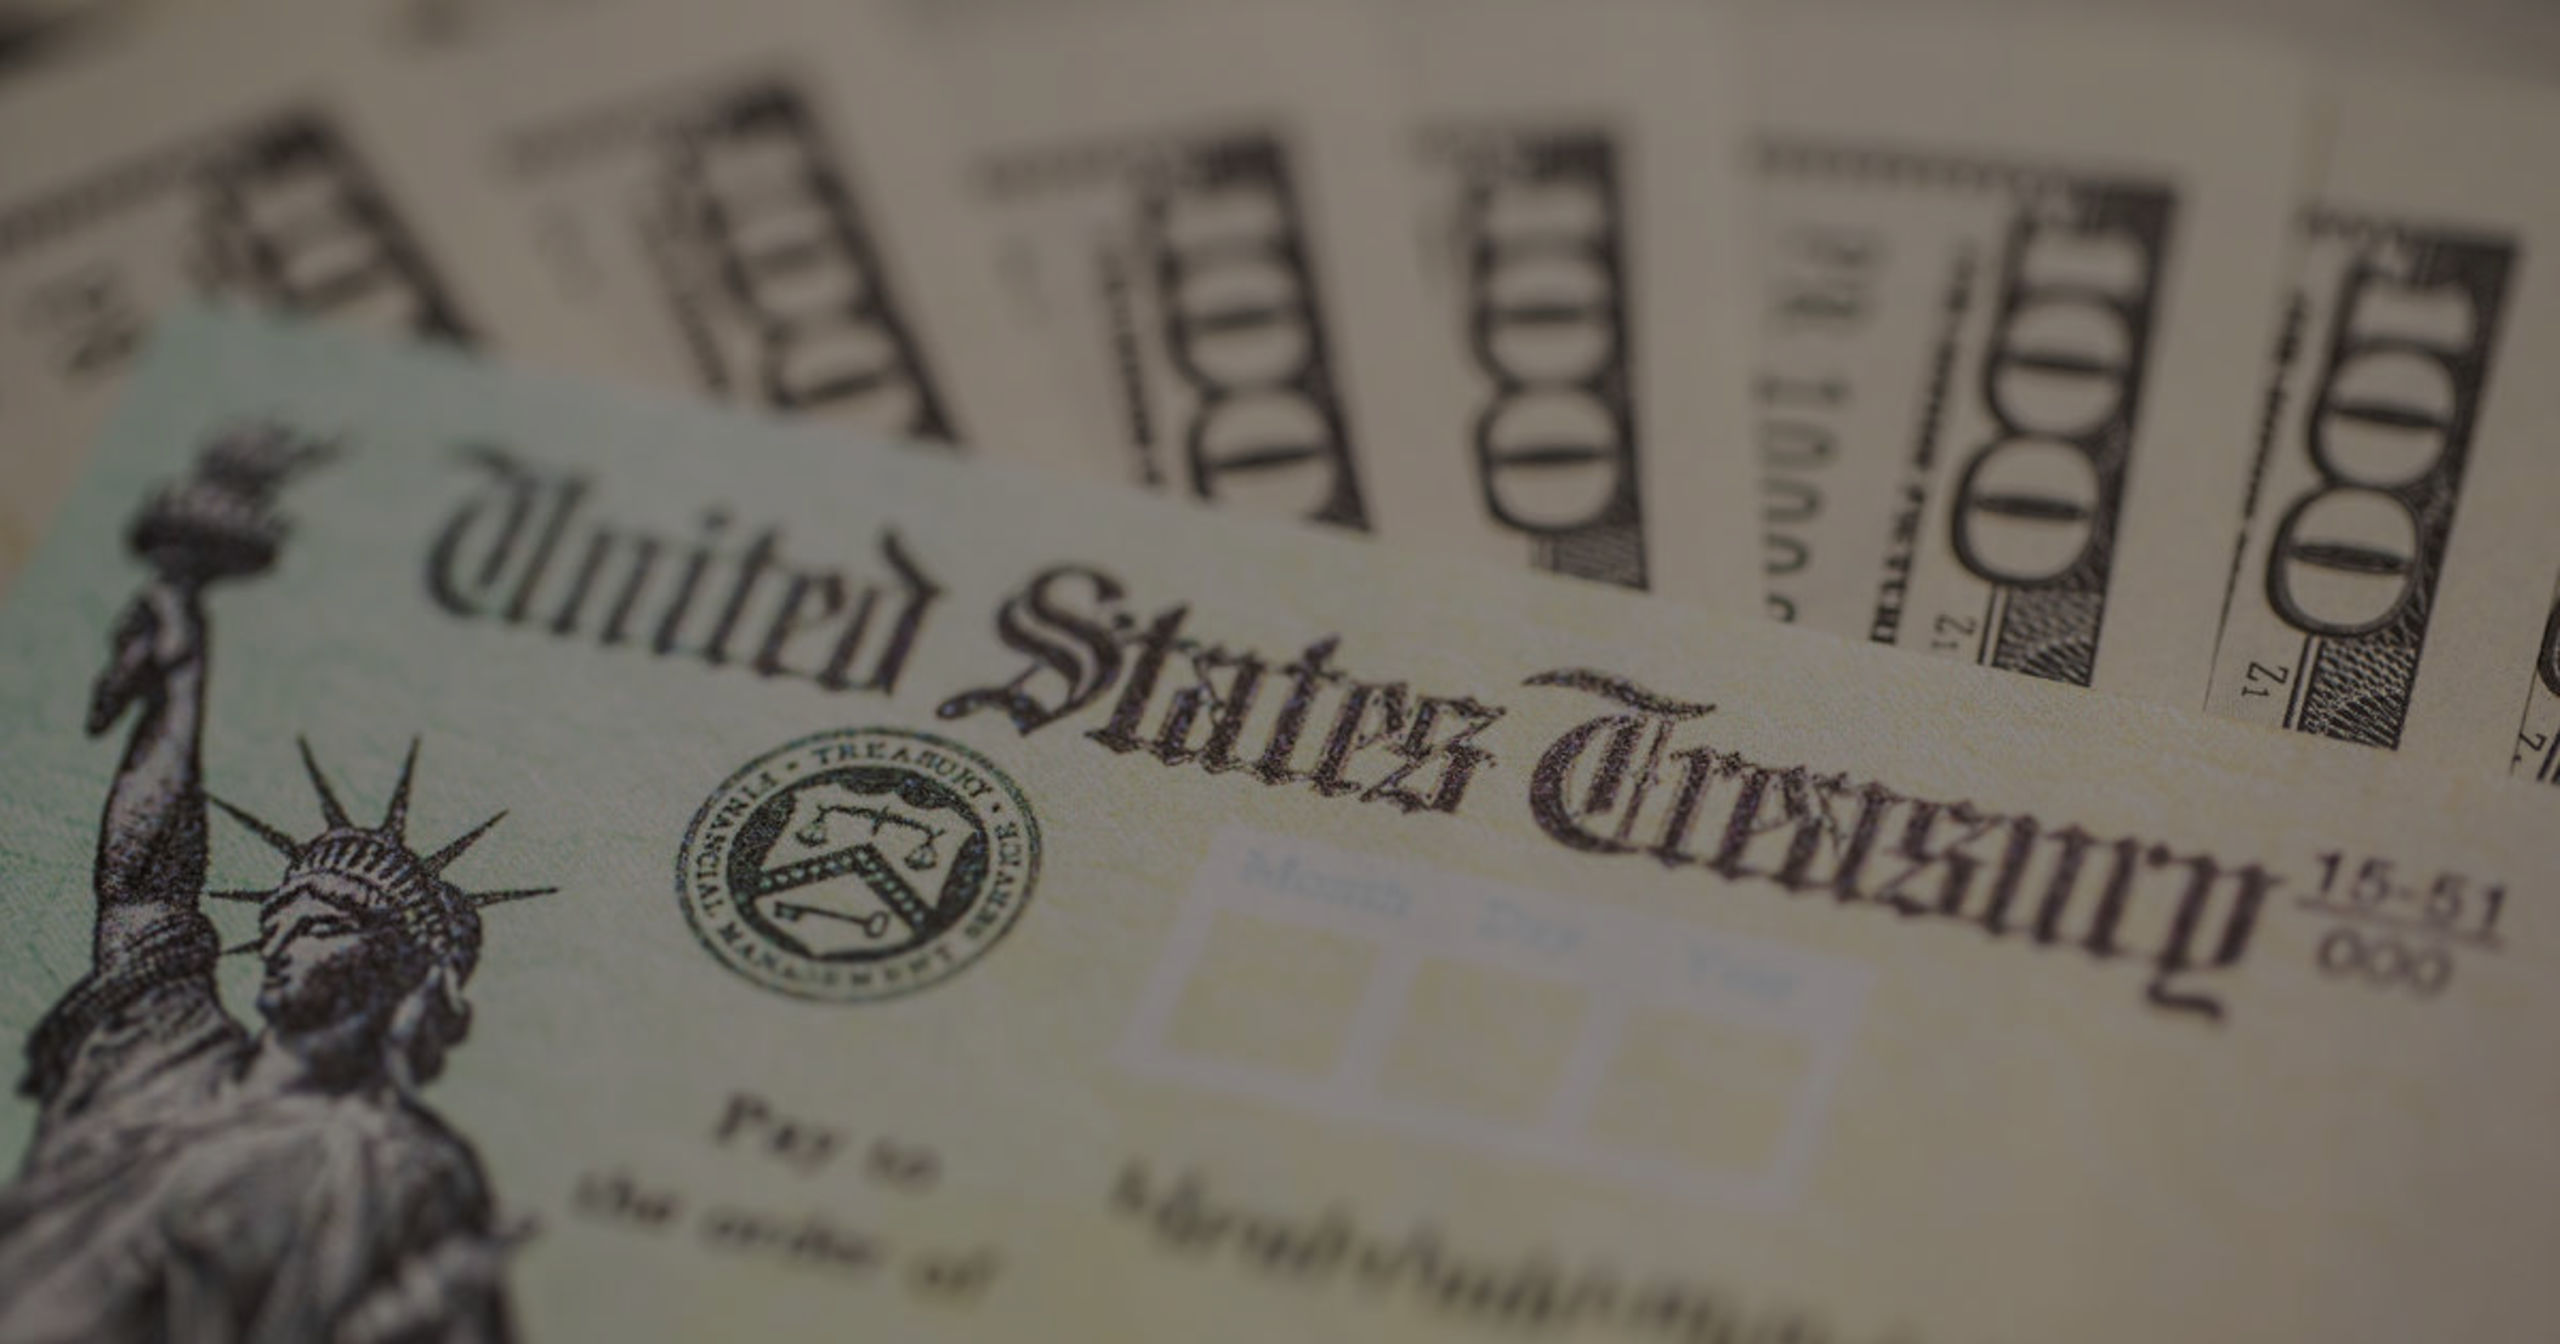 Still missing stimulus money? Tip from the IRS